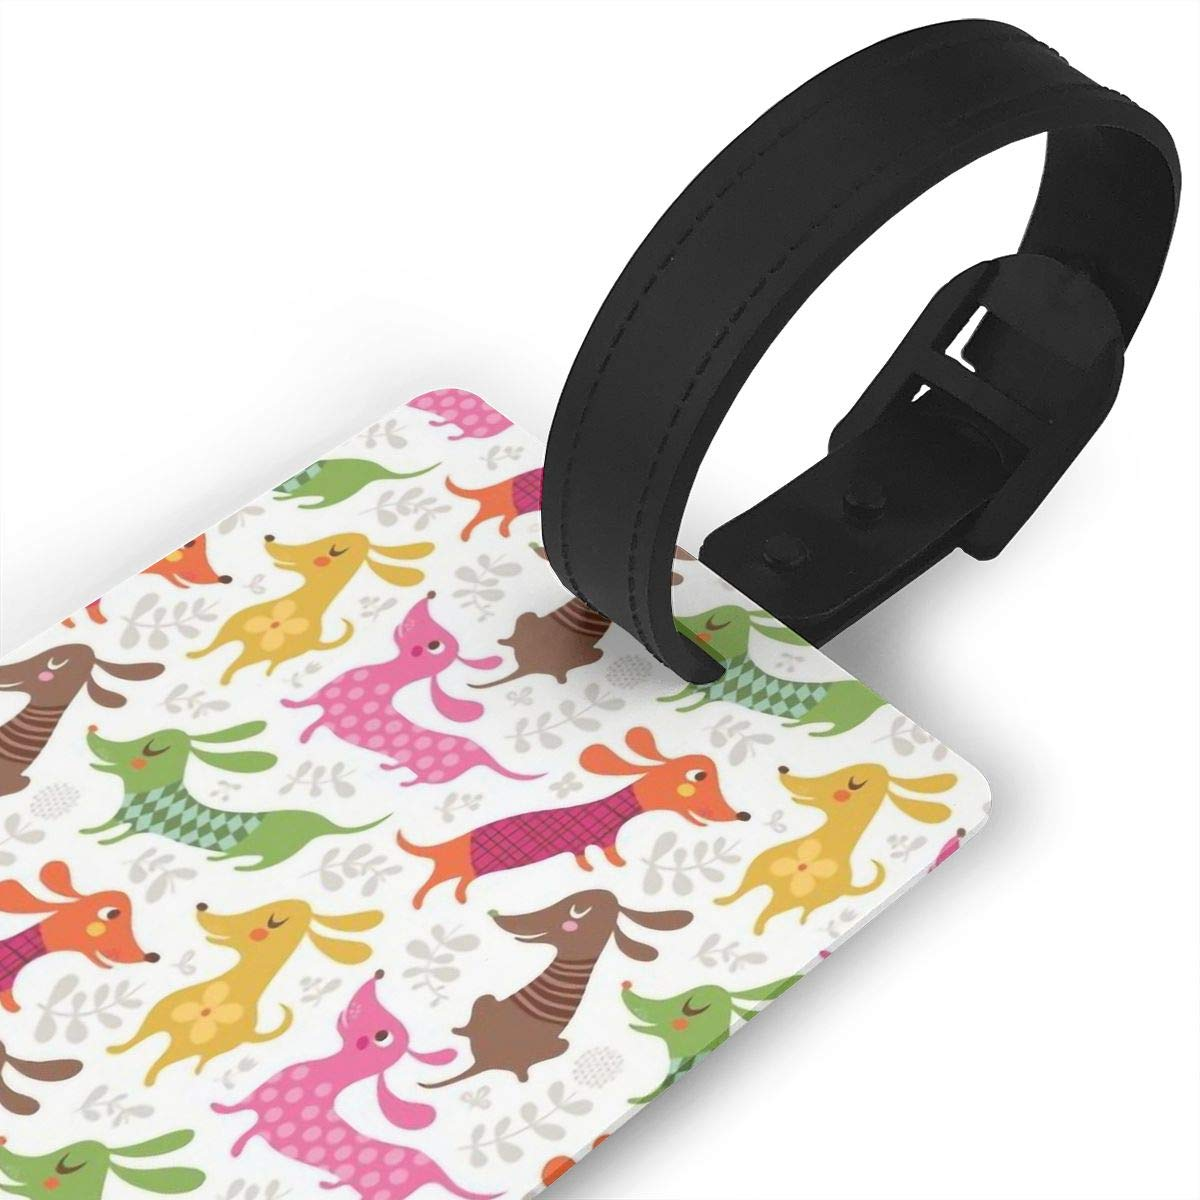 2 Pack Luggage Tags Dogs Dachshund Cruise Luggage Tag For Travel Bag Suitcase Accessories